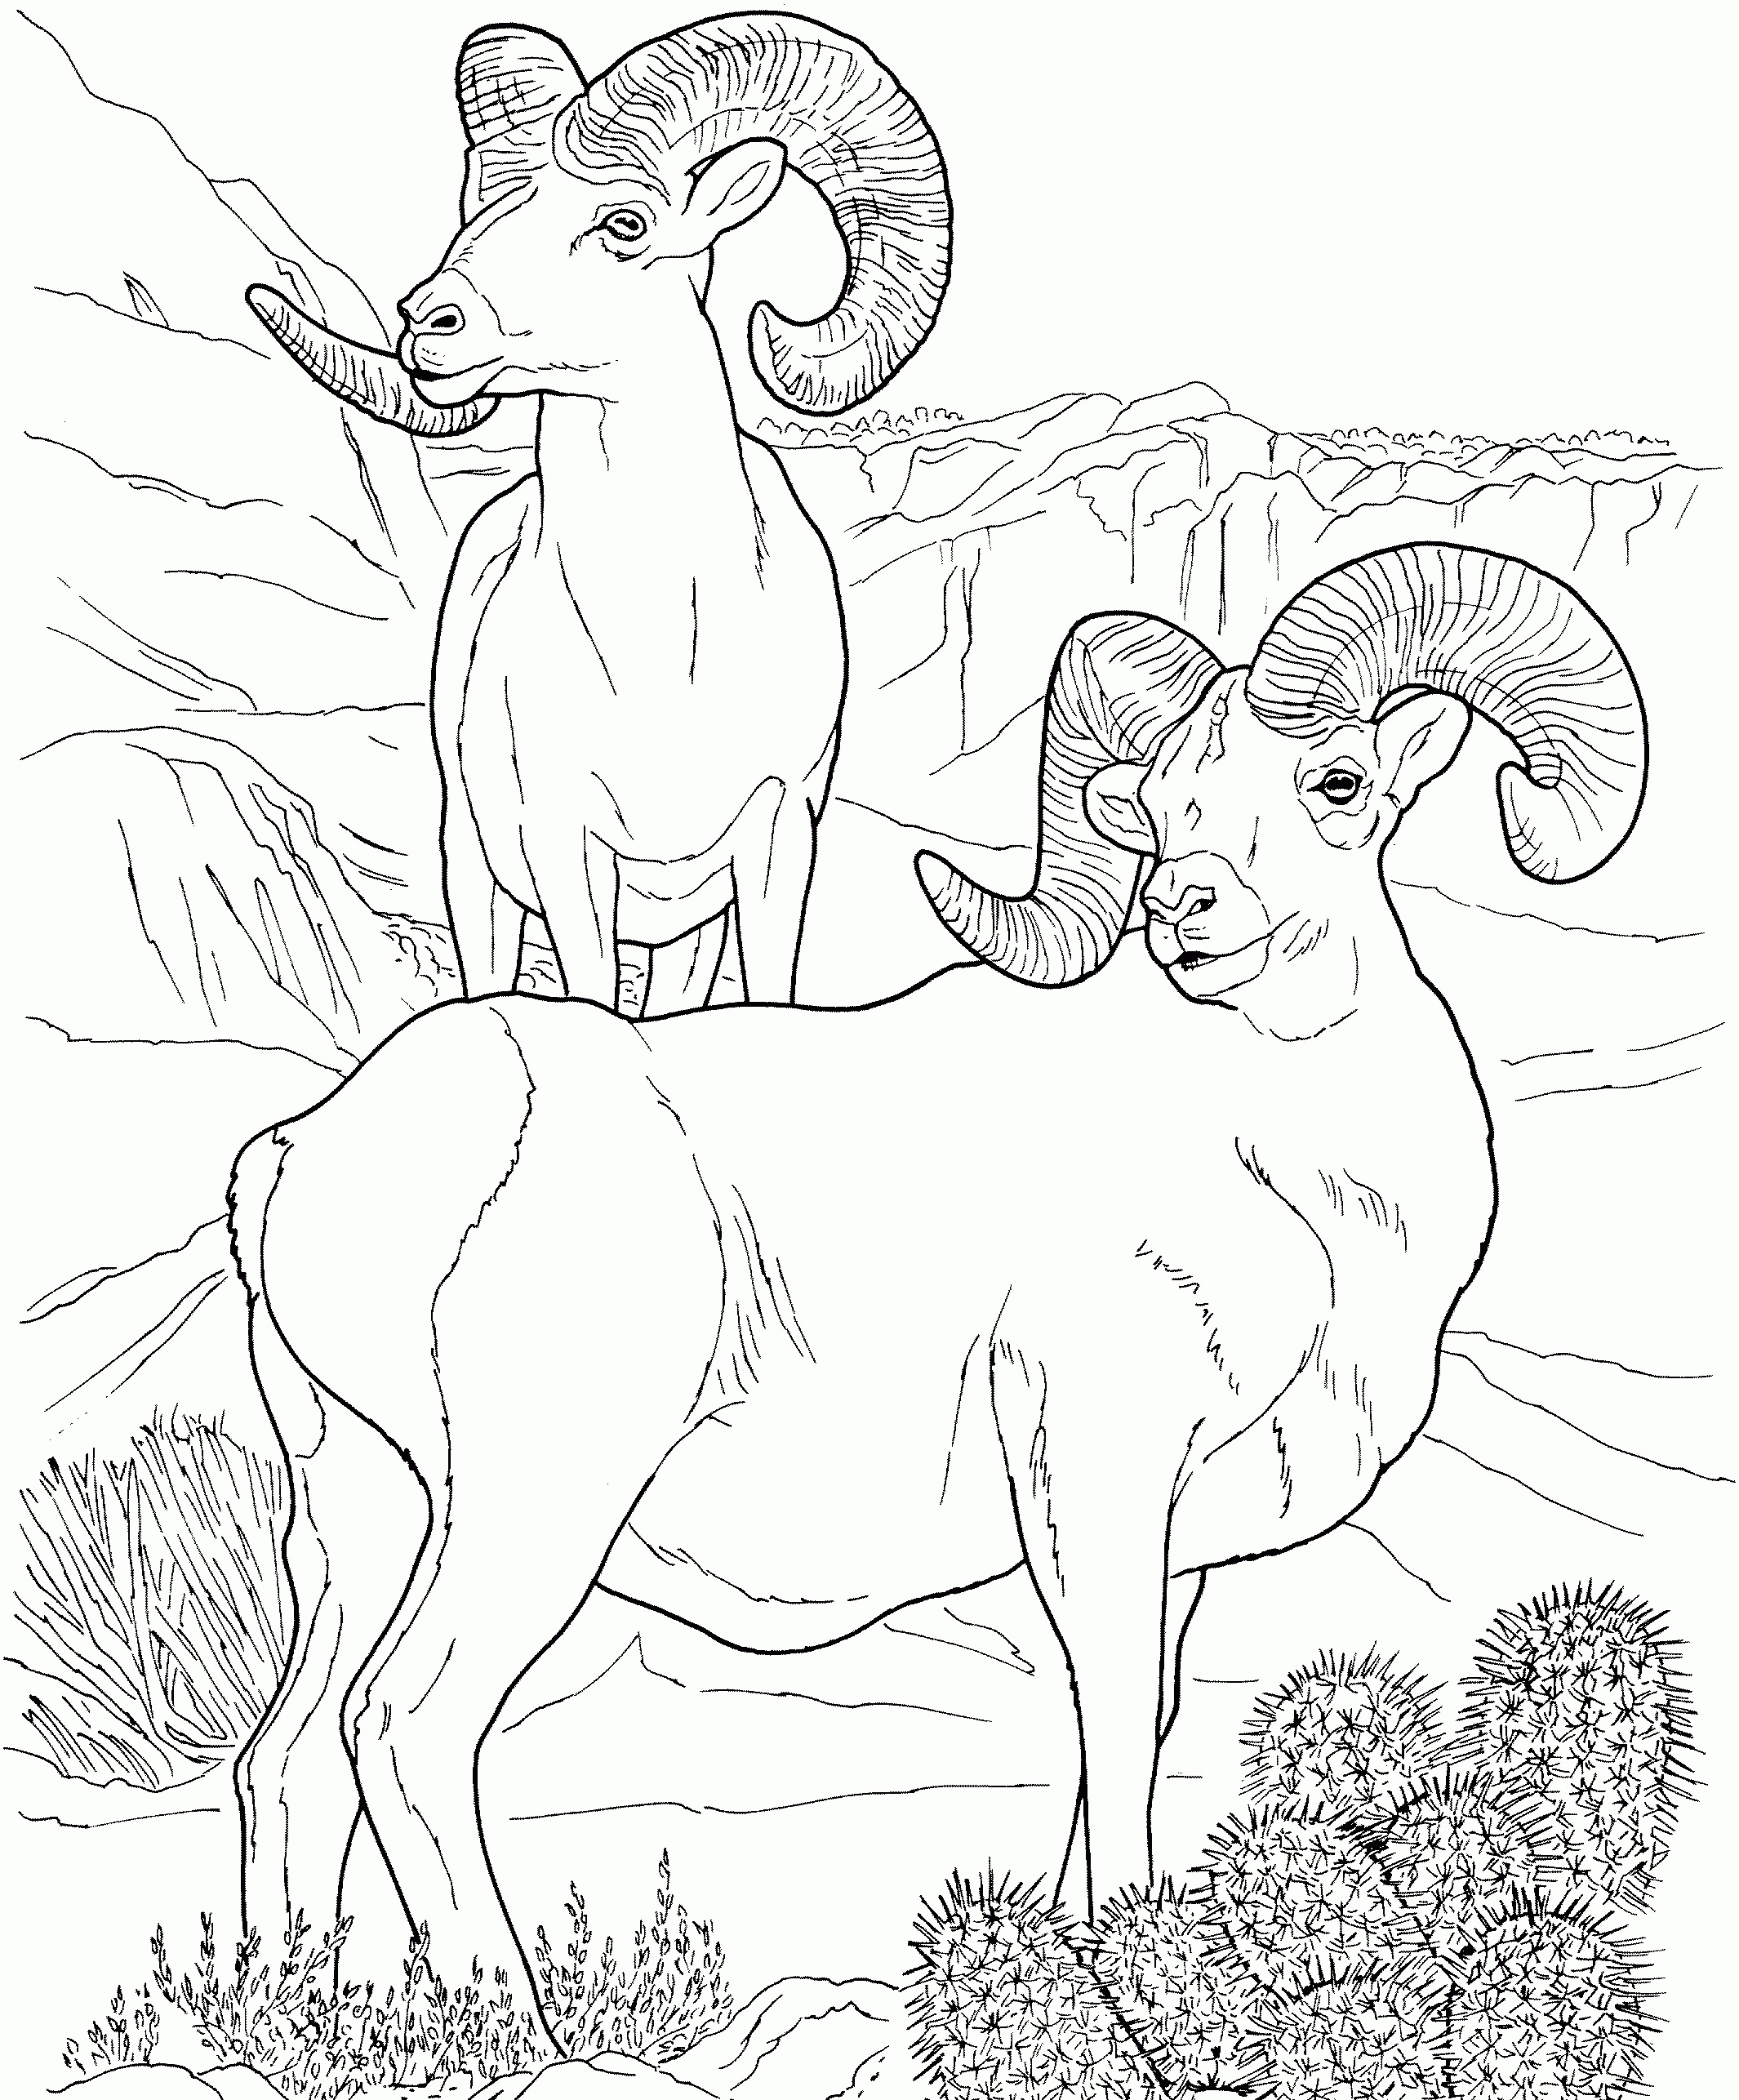 Desert Landscape And Animal Coloring Page For Kids Free Coloring ... | 2572x2130